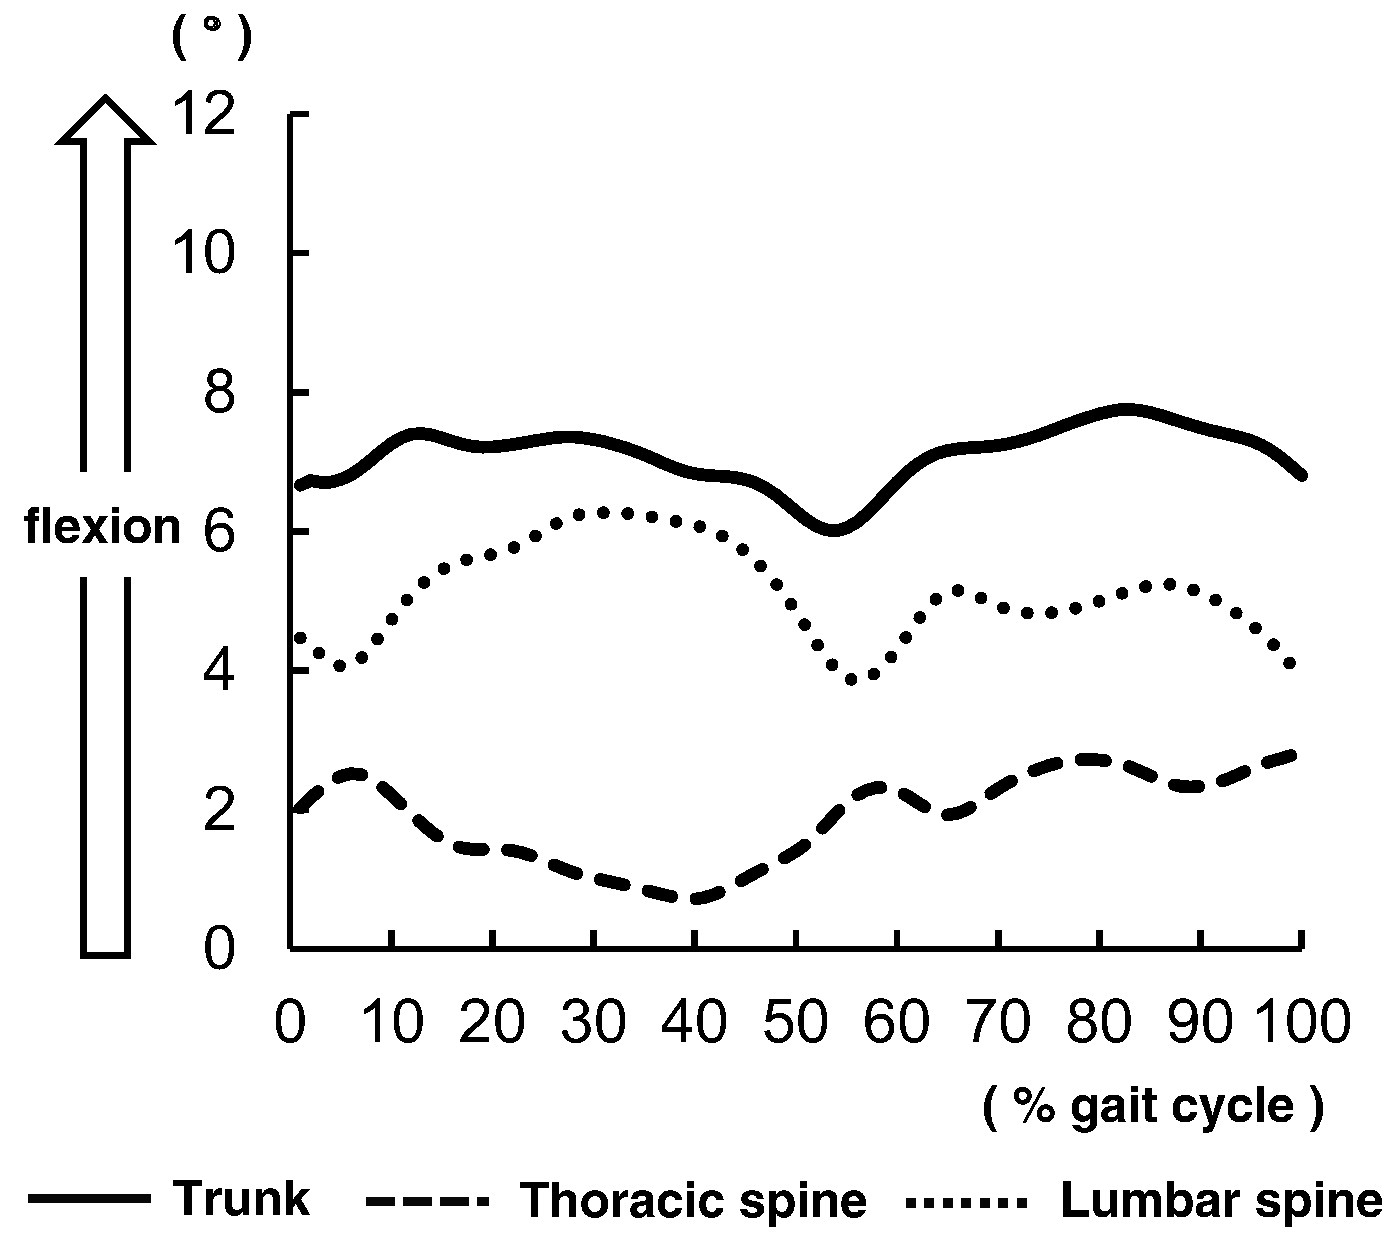 Characteristics Of Thoracic And Lumbar Movements During Gait In Lumbar Spinal Stenosis Patients